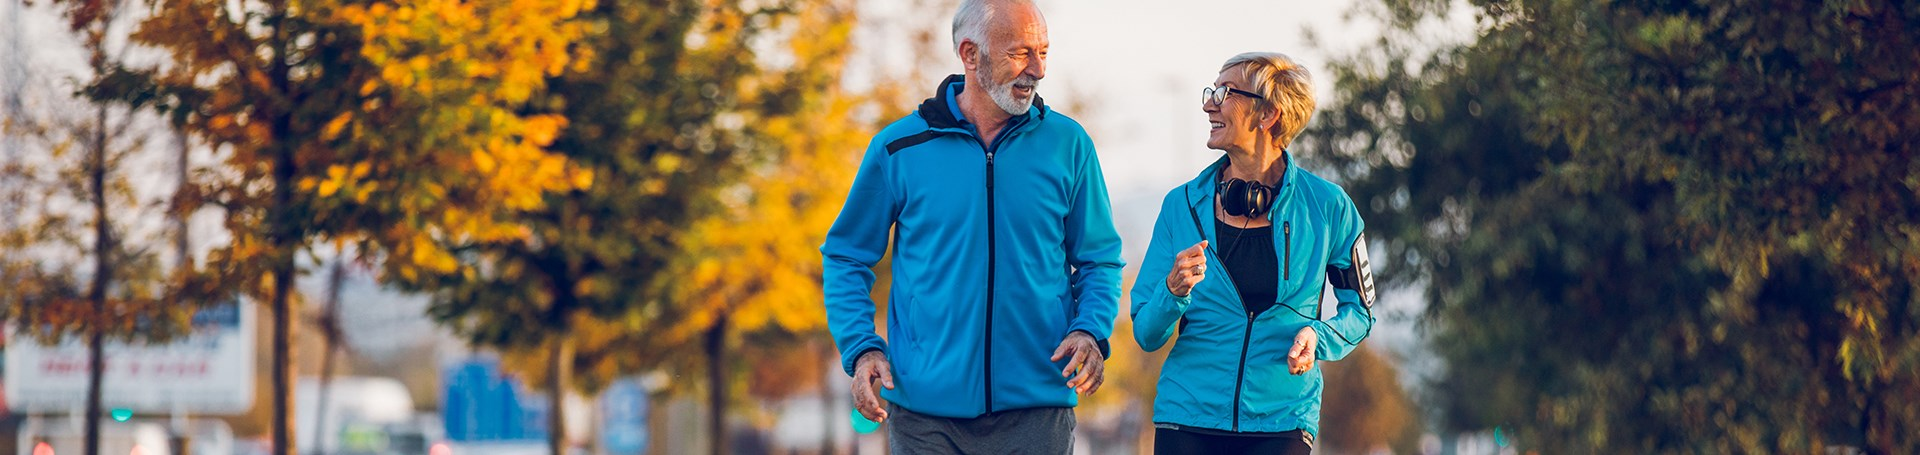 VP_VP_ALL_1920x455_1805_Couple_Senior_Running_Autumn_Urban.jpg